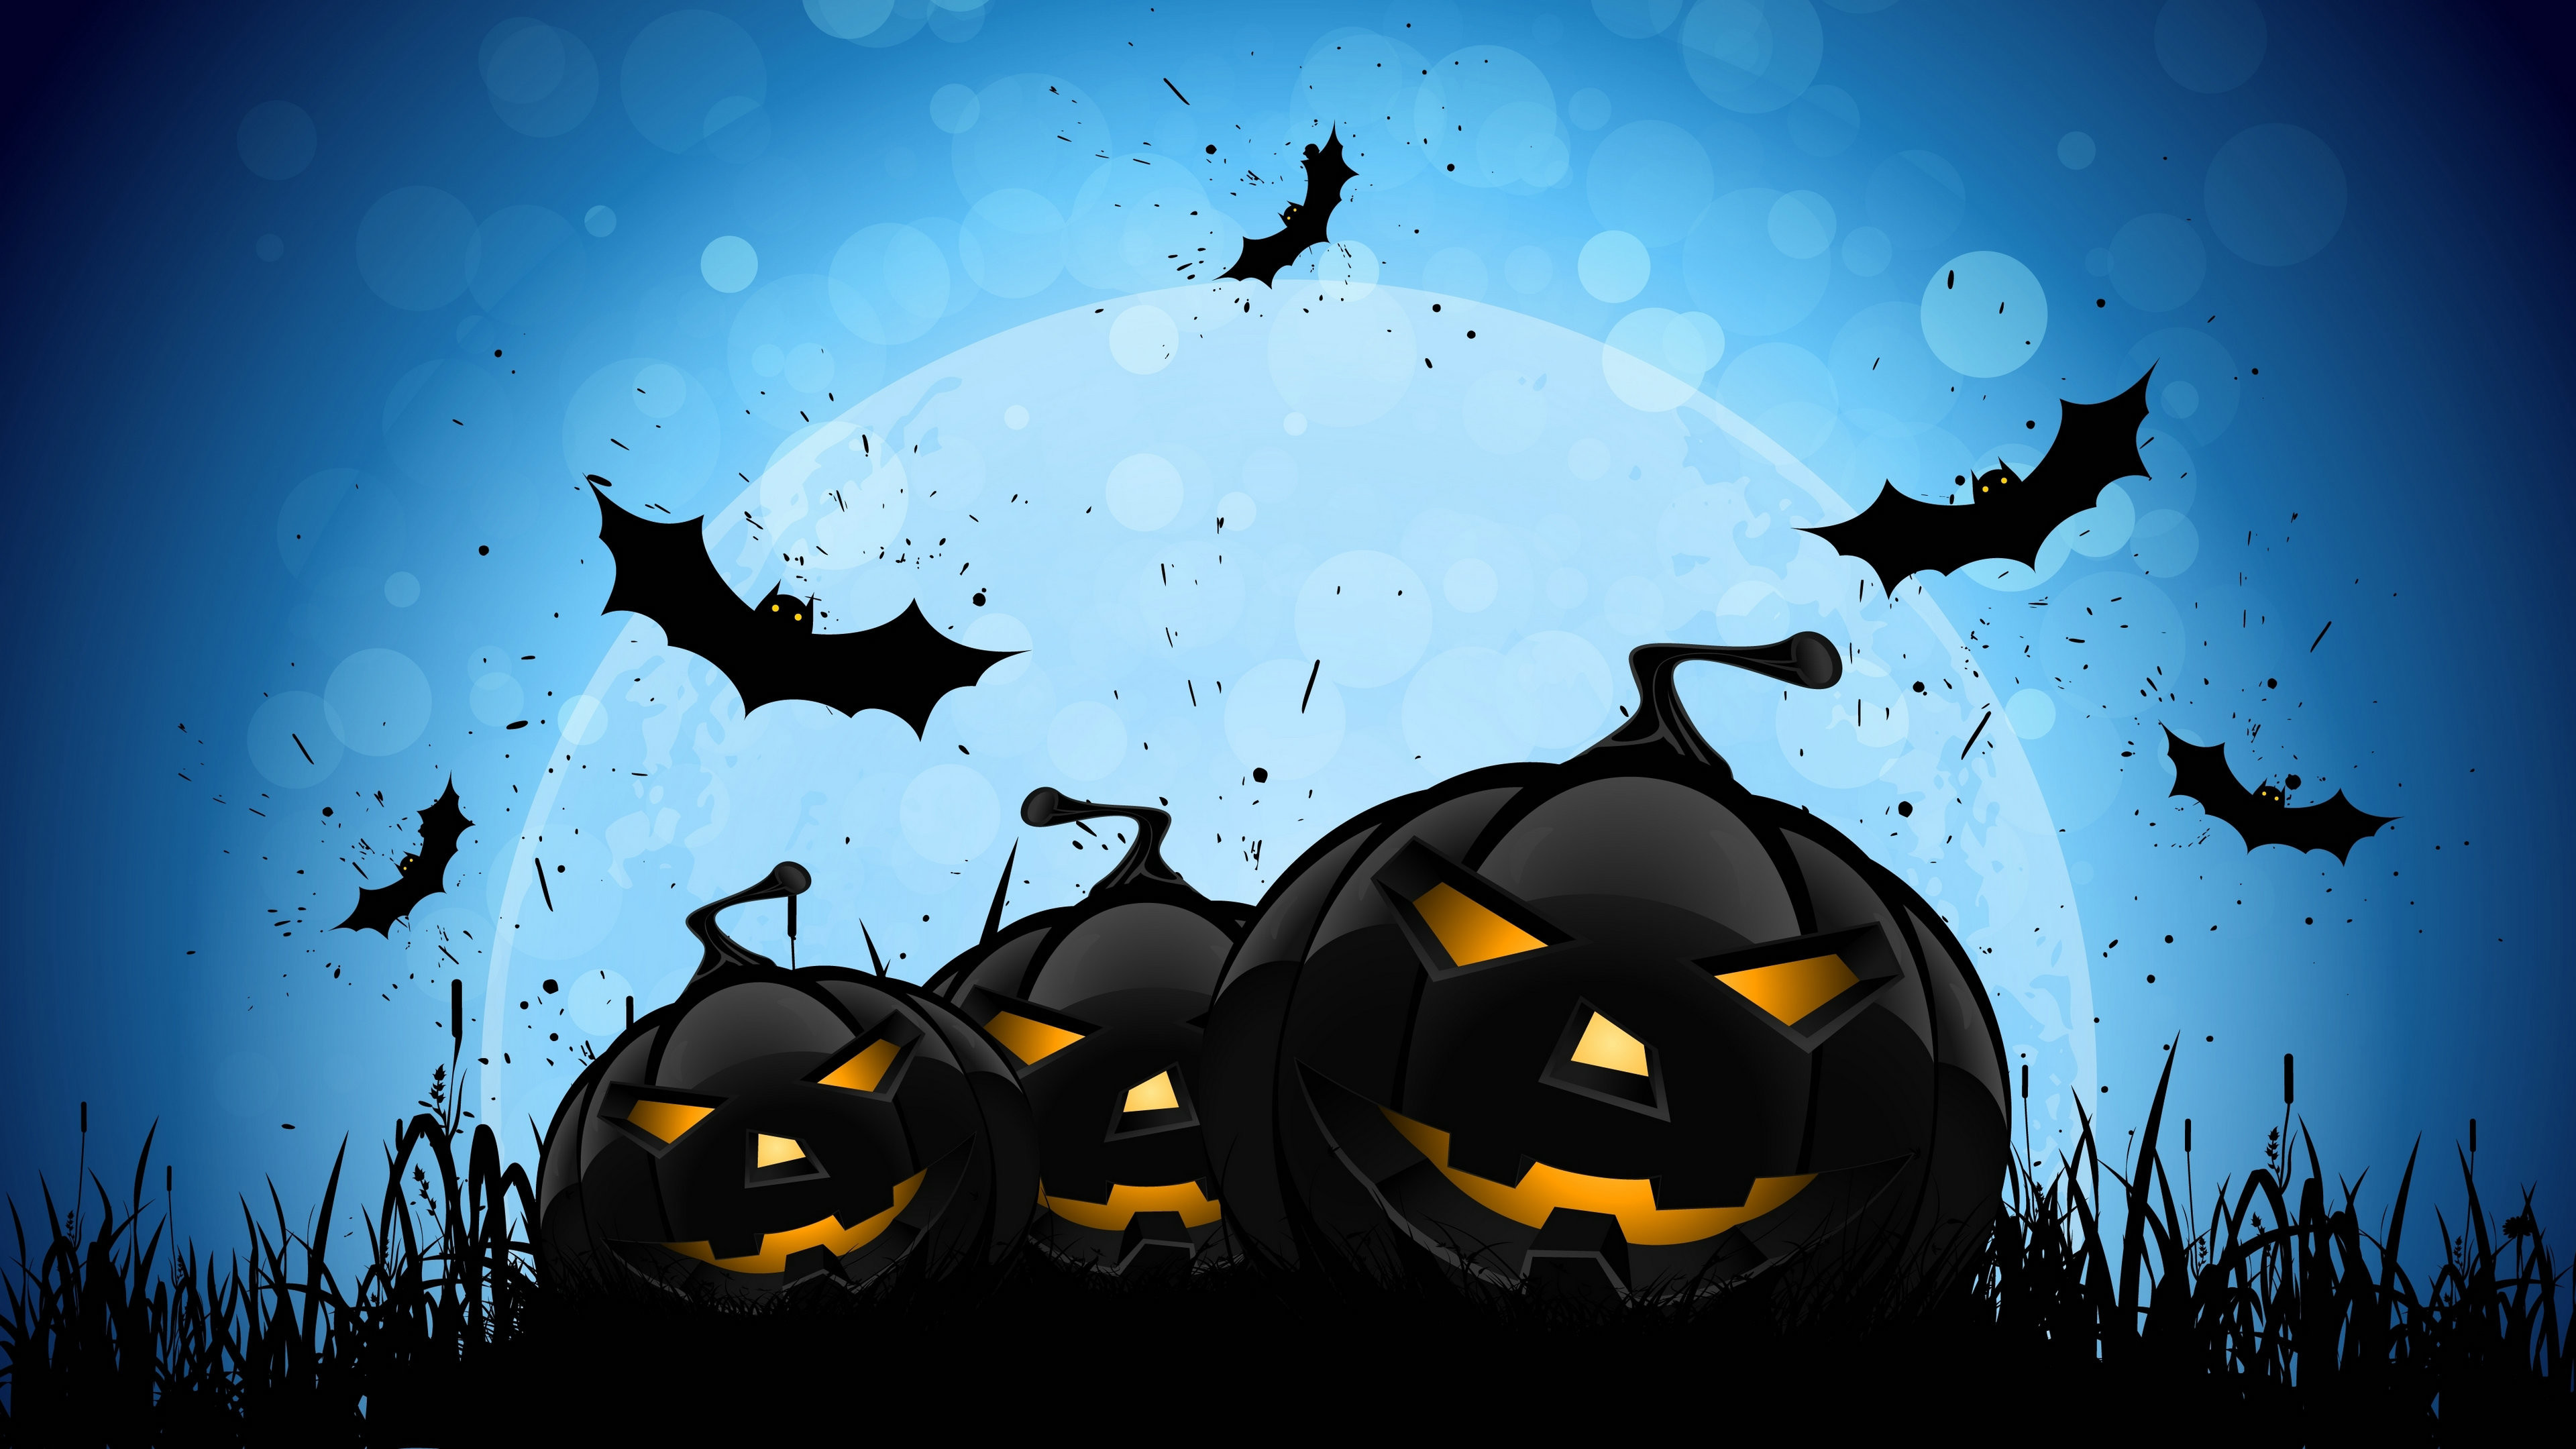 Res: 3840x2160, Halloween Wallpapers For Iphone